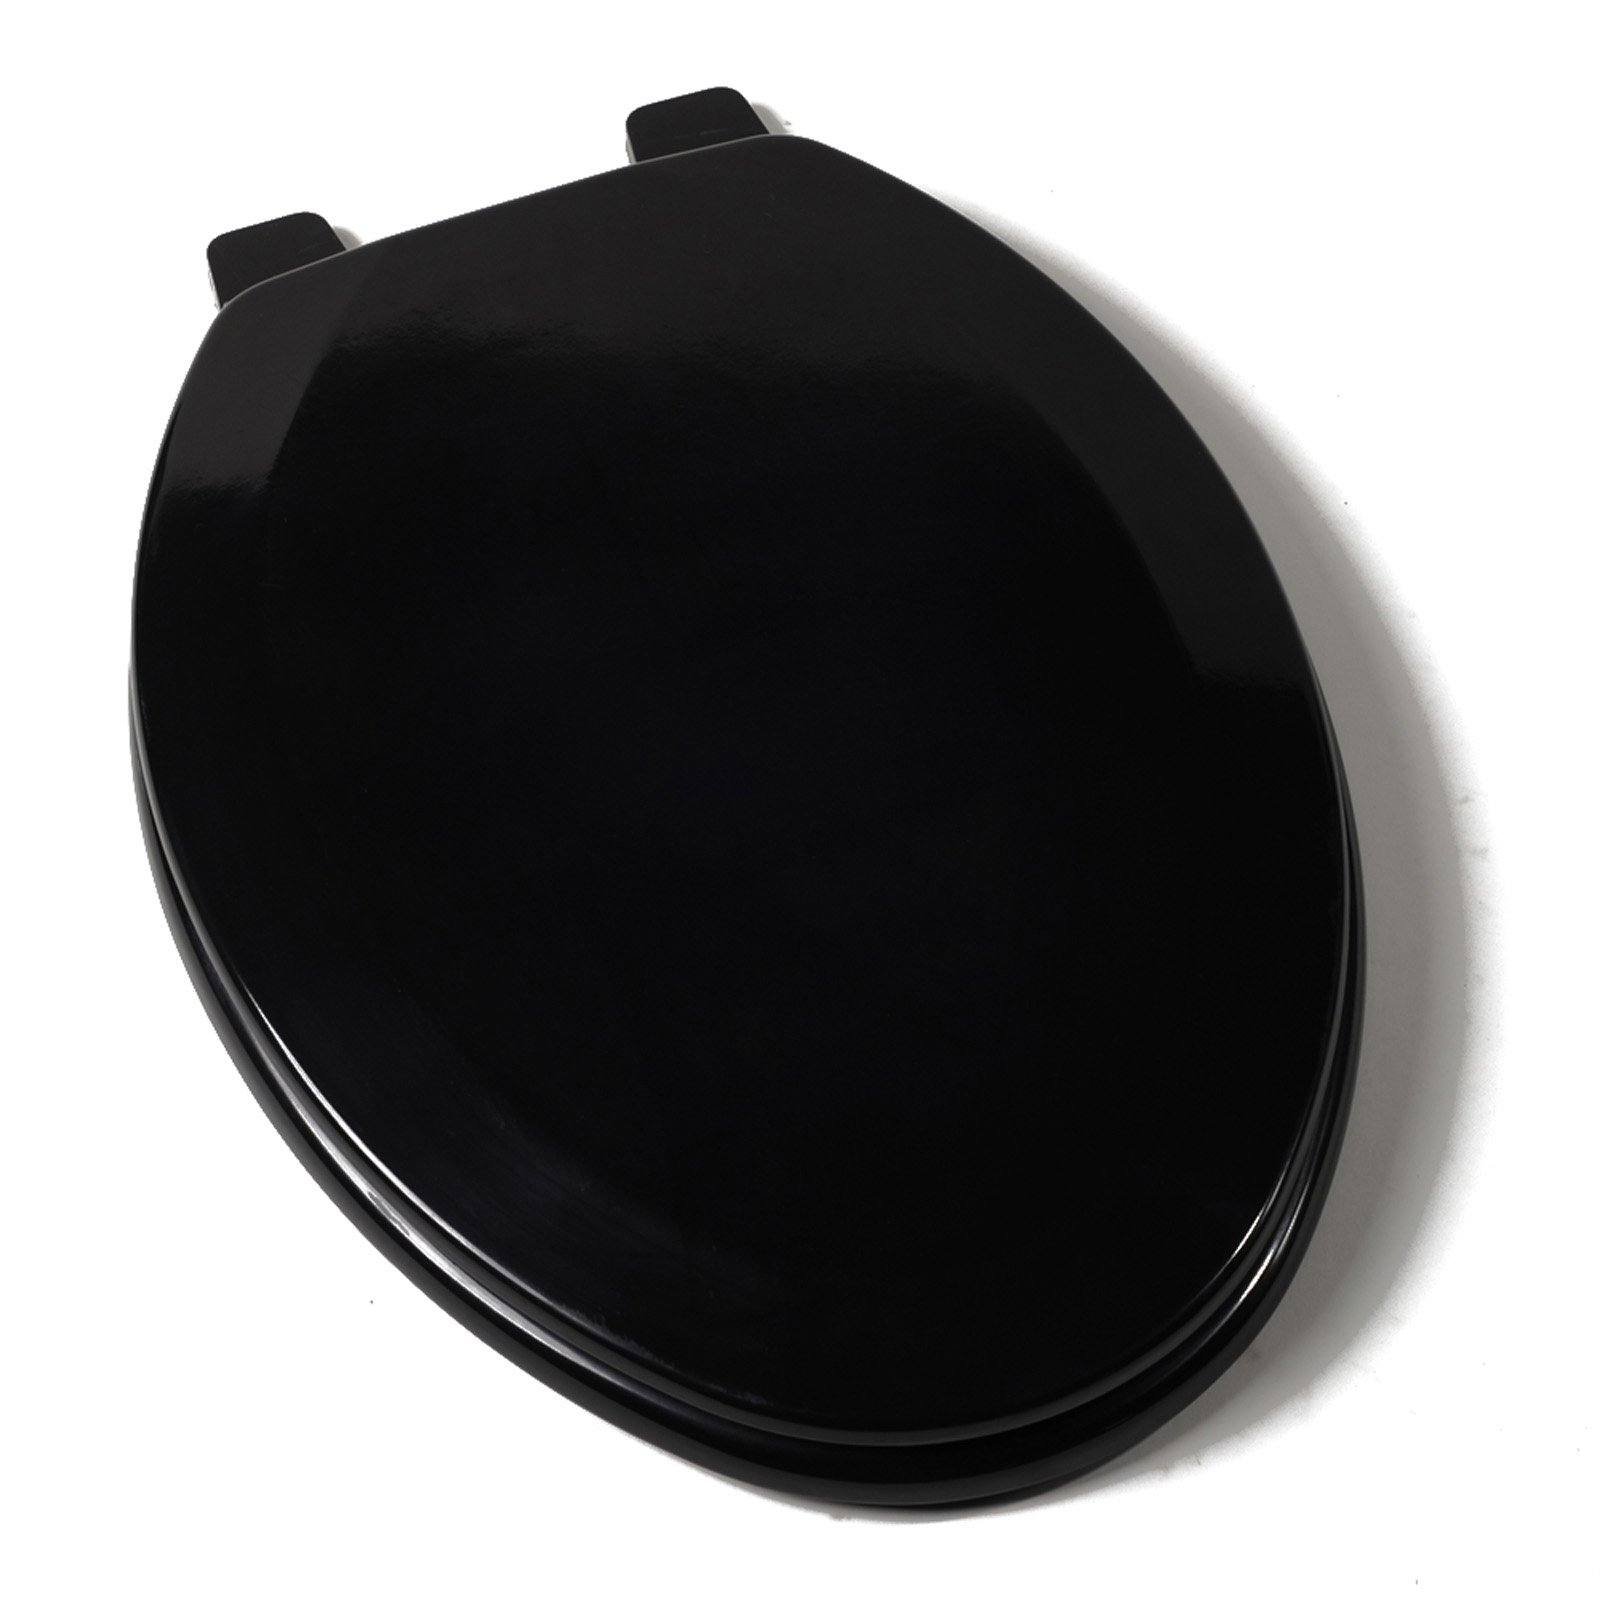 Stupendous Deluxe Molded Wood Toilet Seat Black Elongated Closed Front With Cover Machost Co Dining Chair Design Ideas Machostcouk